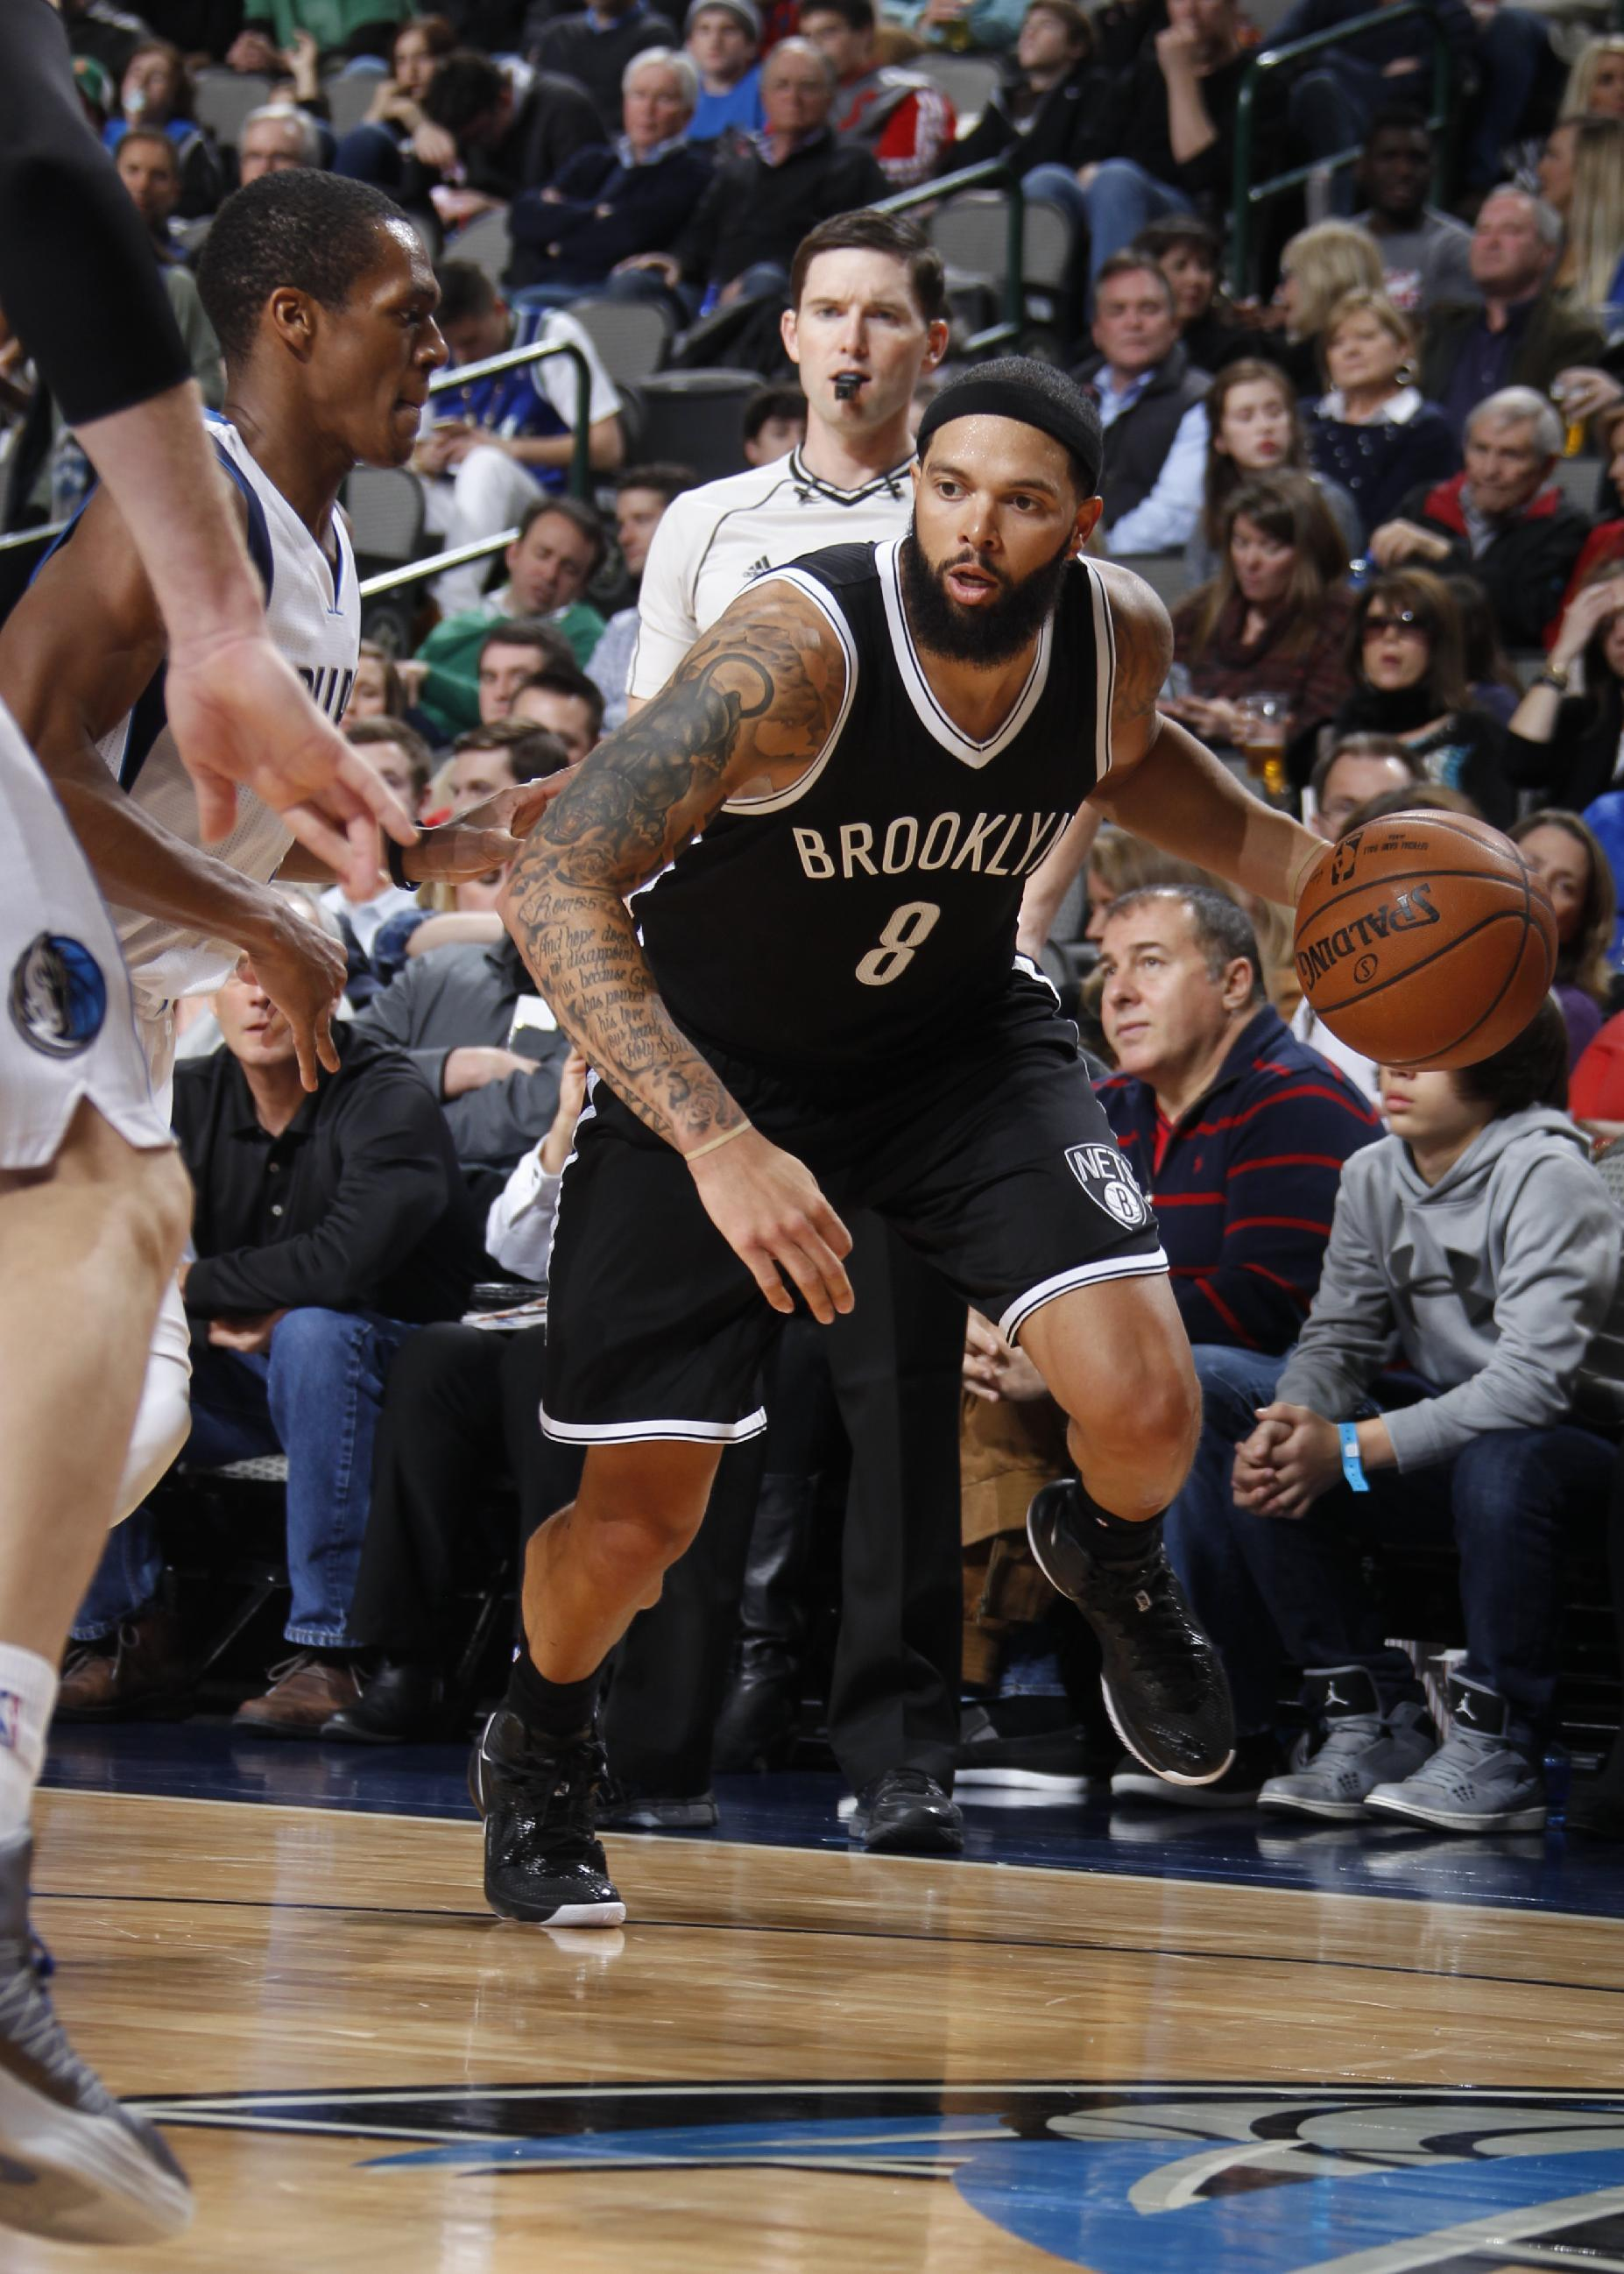 Williams' 25 points lead Nets to 104-94 win over Mavericks